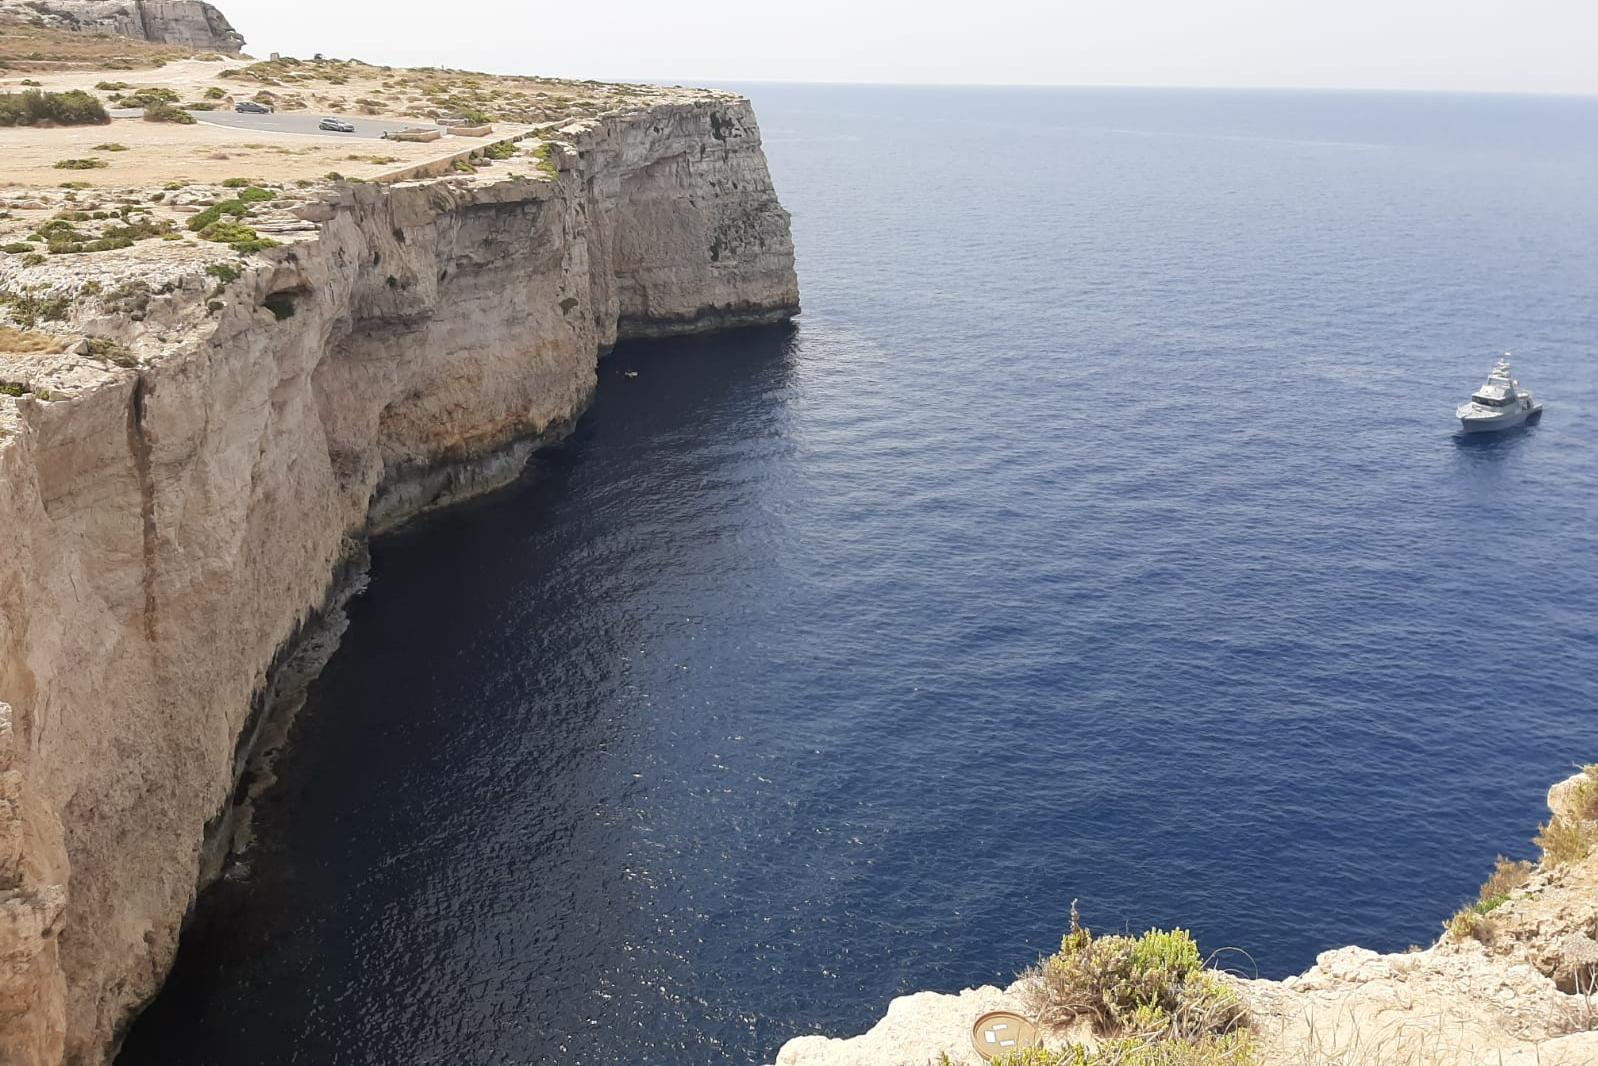 The weapons were buried at sea off the cliffs on Malta's northwestern coast. Photo: Jonathan Borg